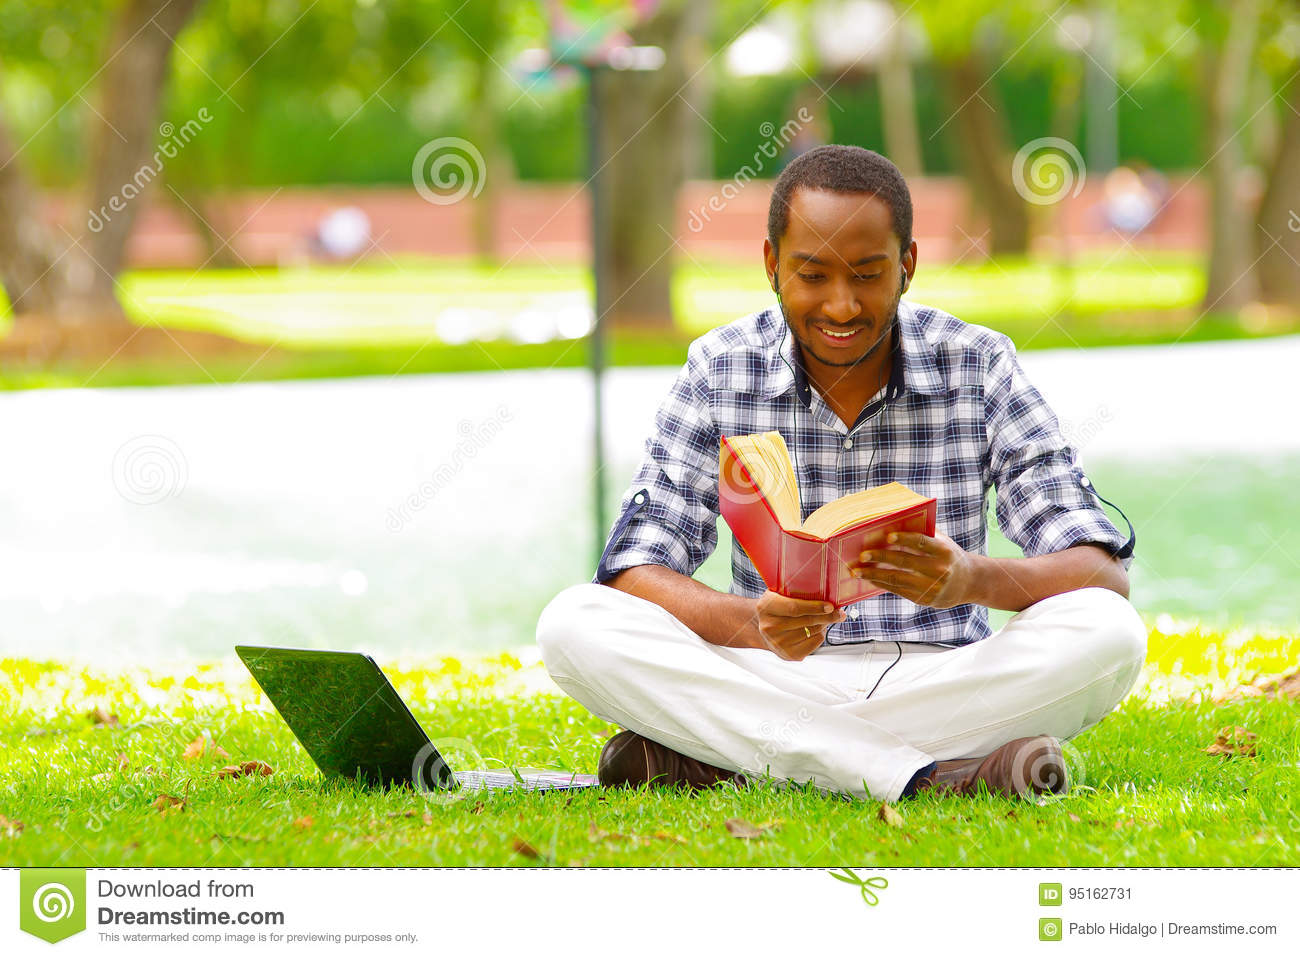 Young Black Tourist Man Sitting Down On Green Grass Reading A Book With His Computer Near To Him In The City Of Quito Stock Image - Image of healthy, flexible: 95162731